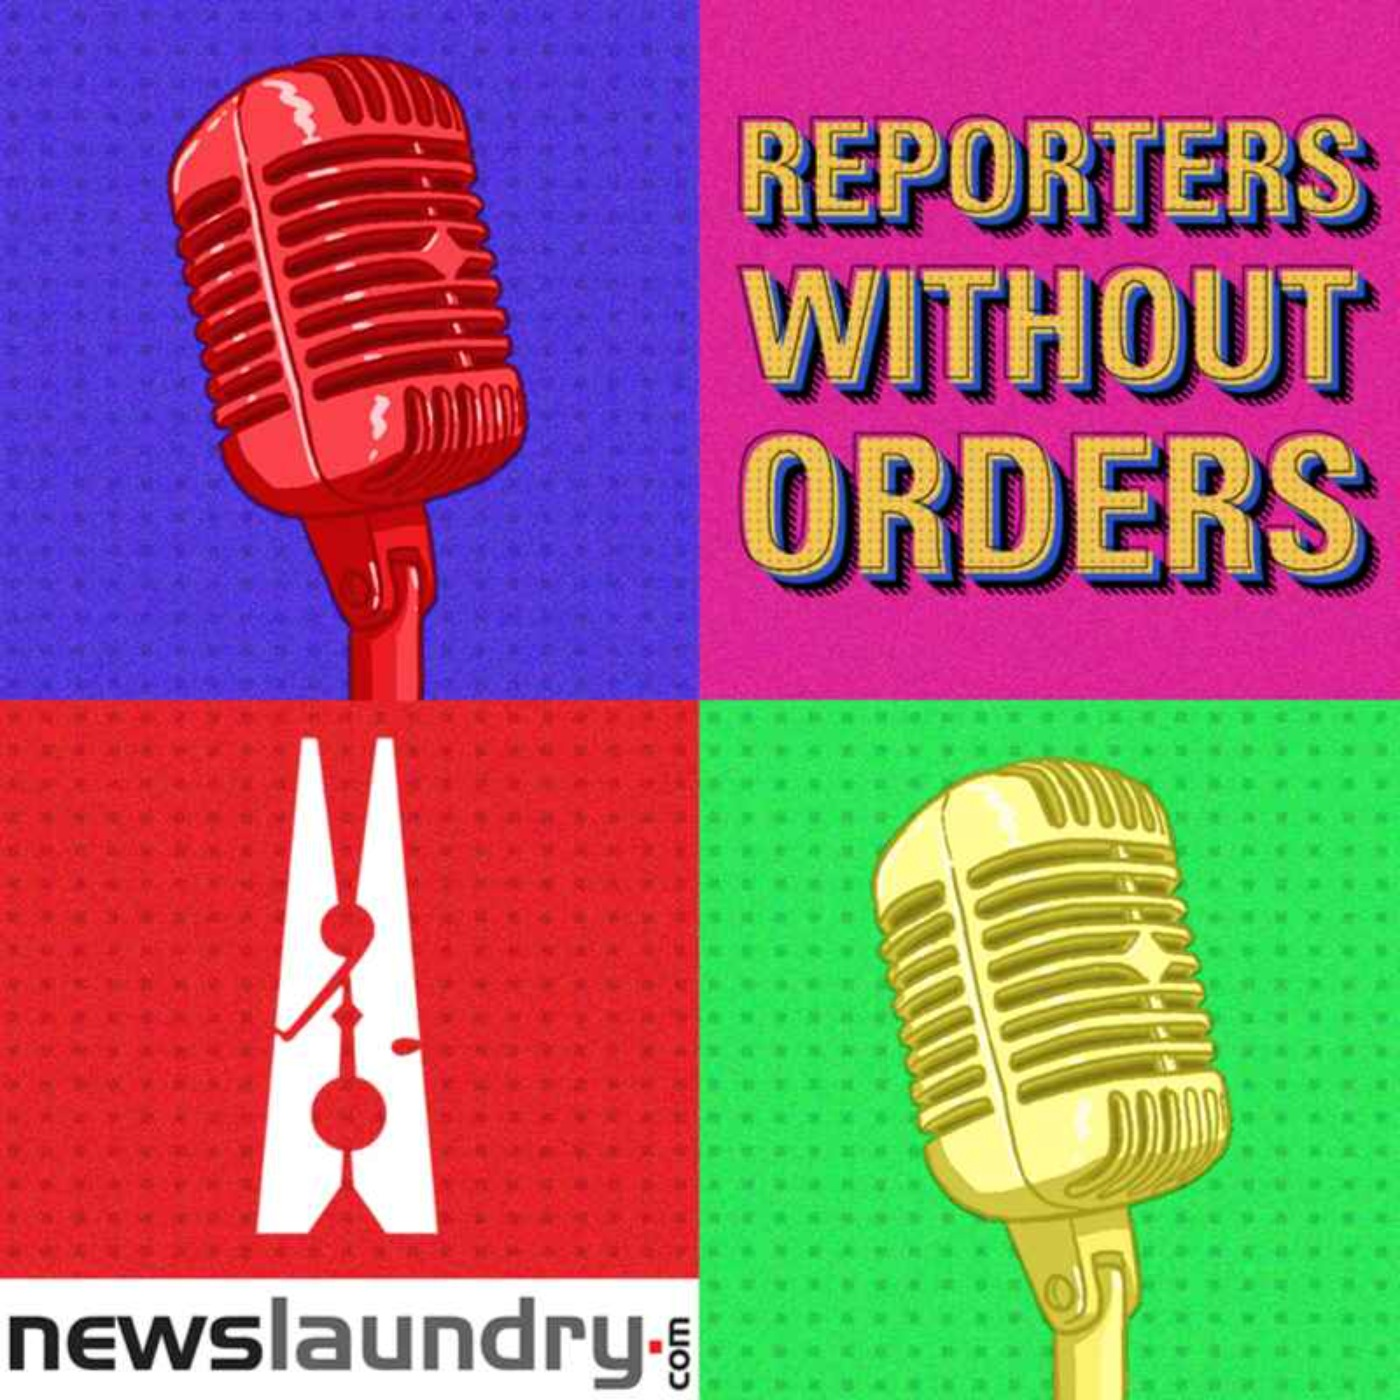 Reporters Without Orders Ep 153: Internet shutdown, attacks on journalists, and updates after Tractor Rally